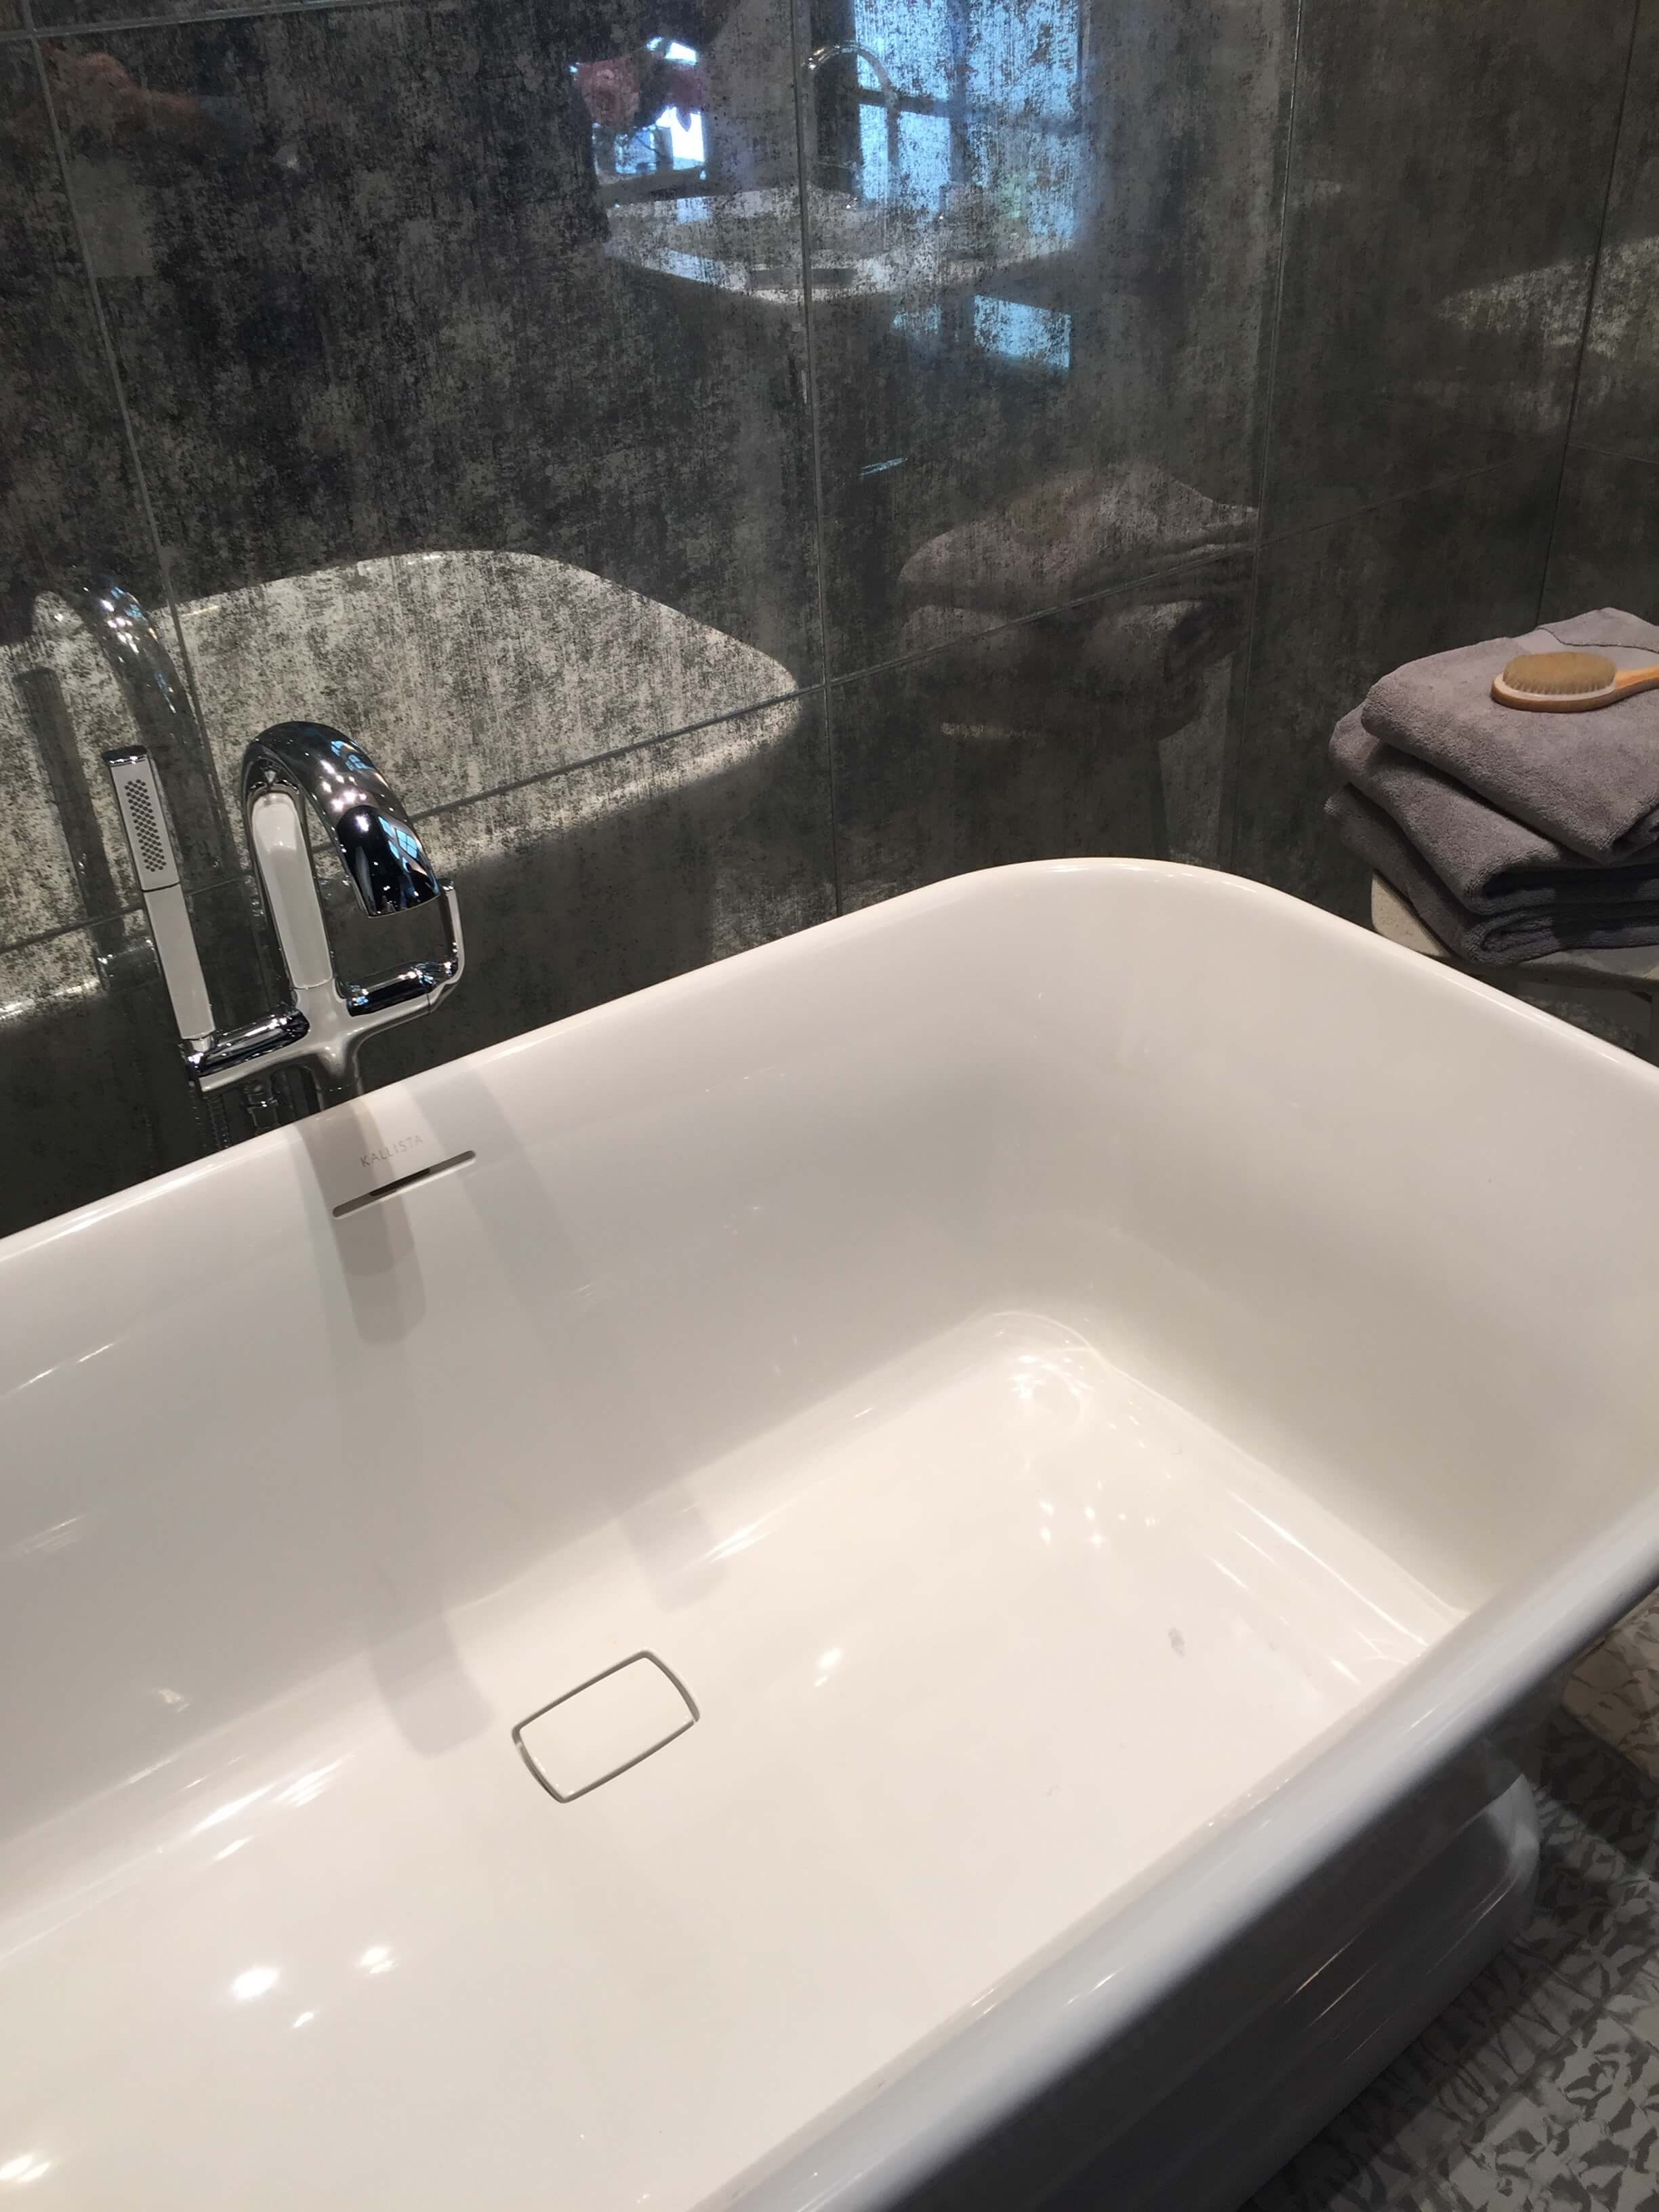 Mirrored tiles were big at KBIS, especially in the Ann Sacks booth. Love these antiqued mirror tiles for their more subtle, reflective quality. #bathroom #mirroredtile